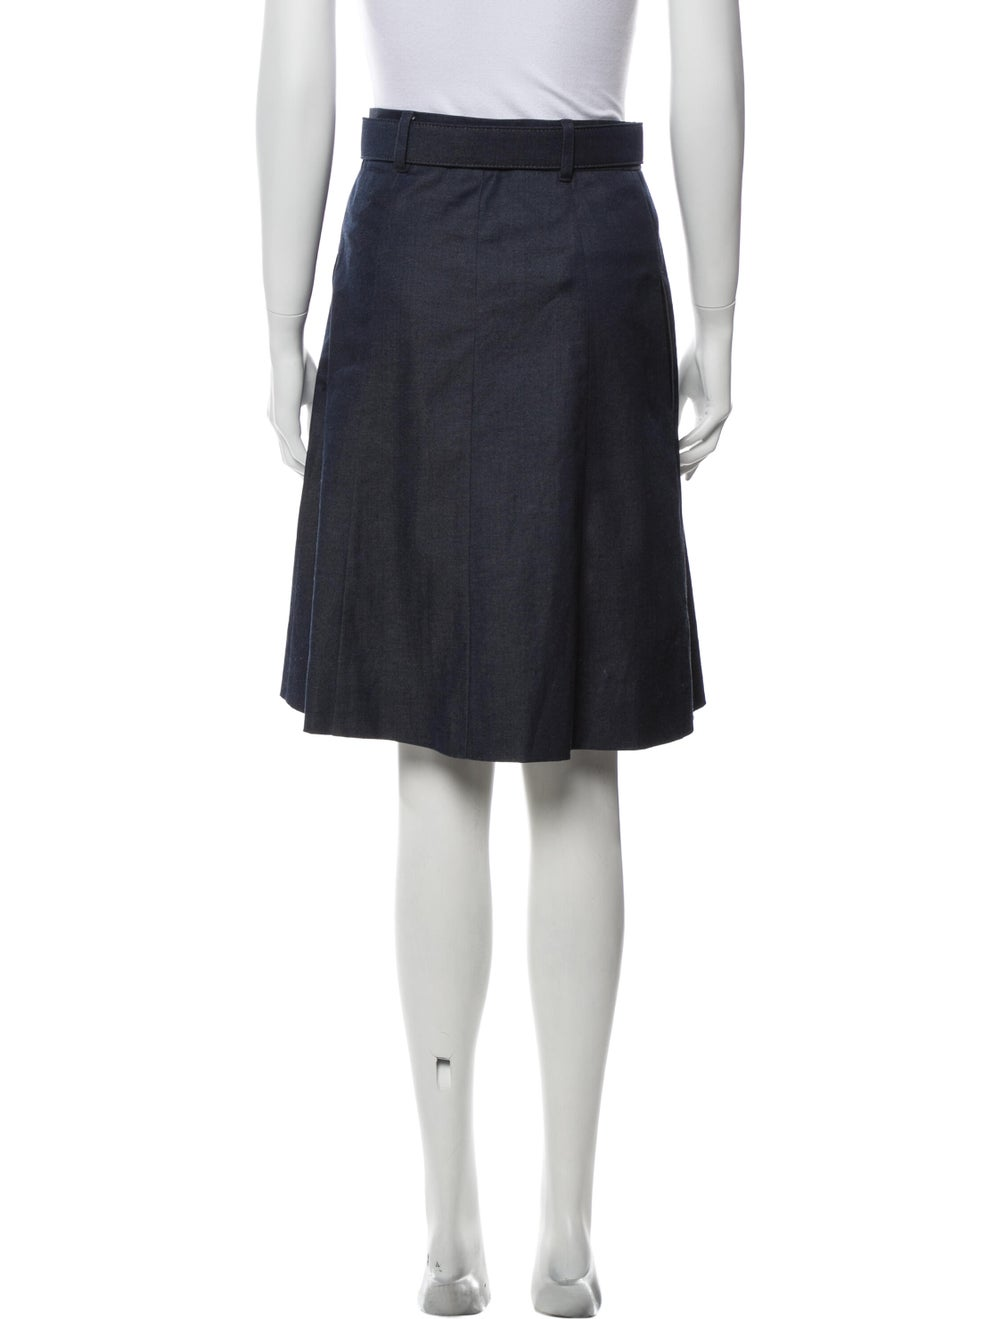 Moschino Cheap and Chic Knee-Length Skirt Blue - image 3